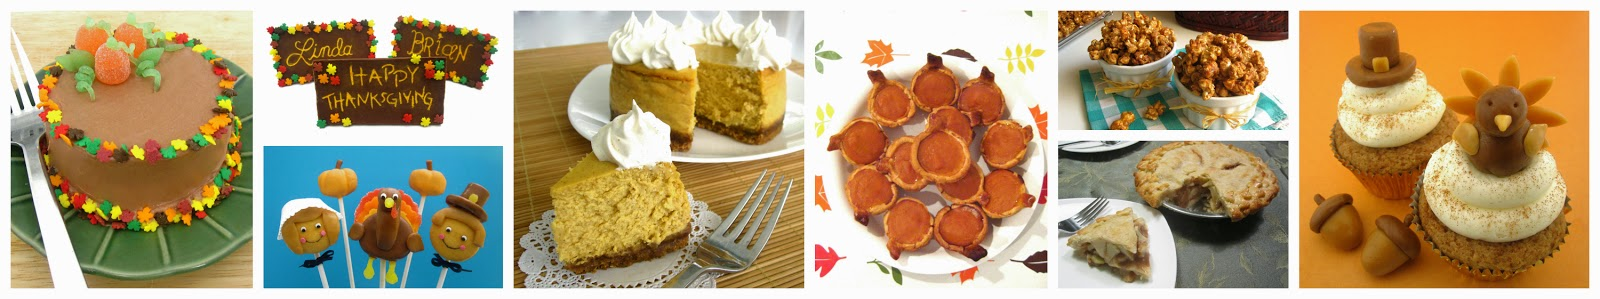 http://blog.dollhousebakeshoppe.com/2011/11/thanksgiving-roundup.html